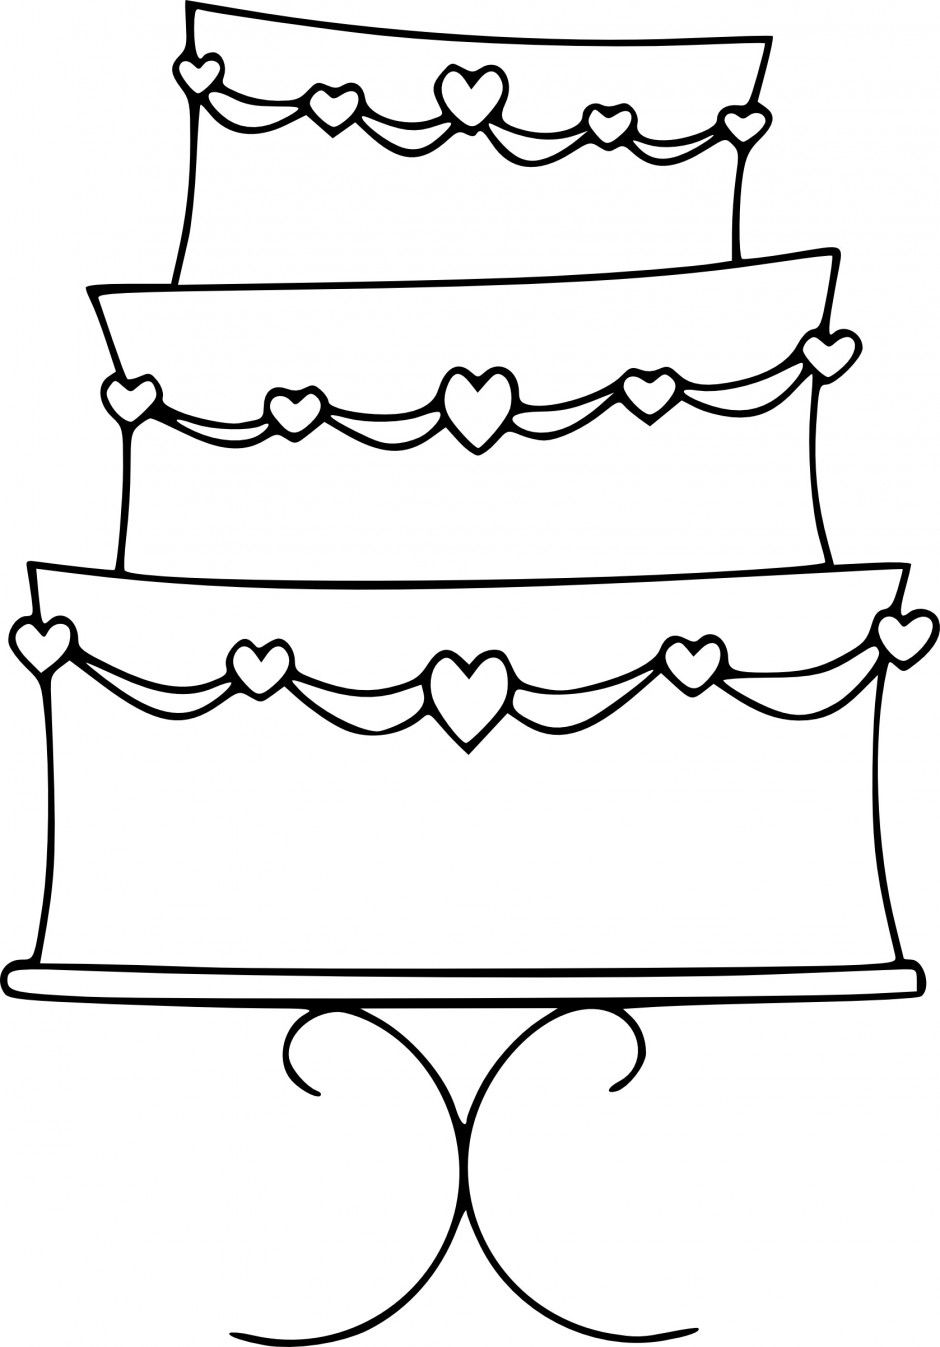 Printable Cupcake Coloring Pages For Kids Wedding Coloring Book